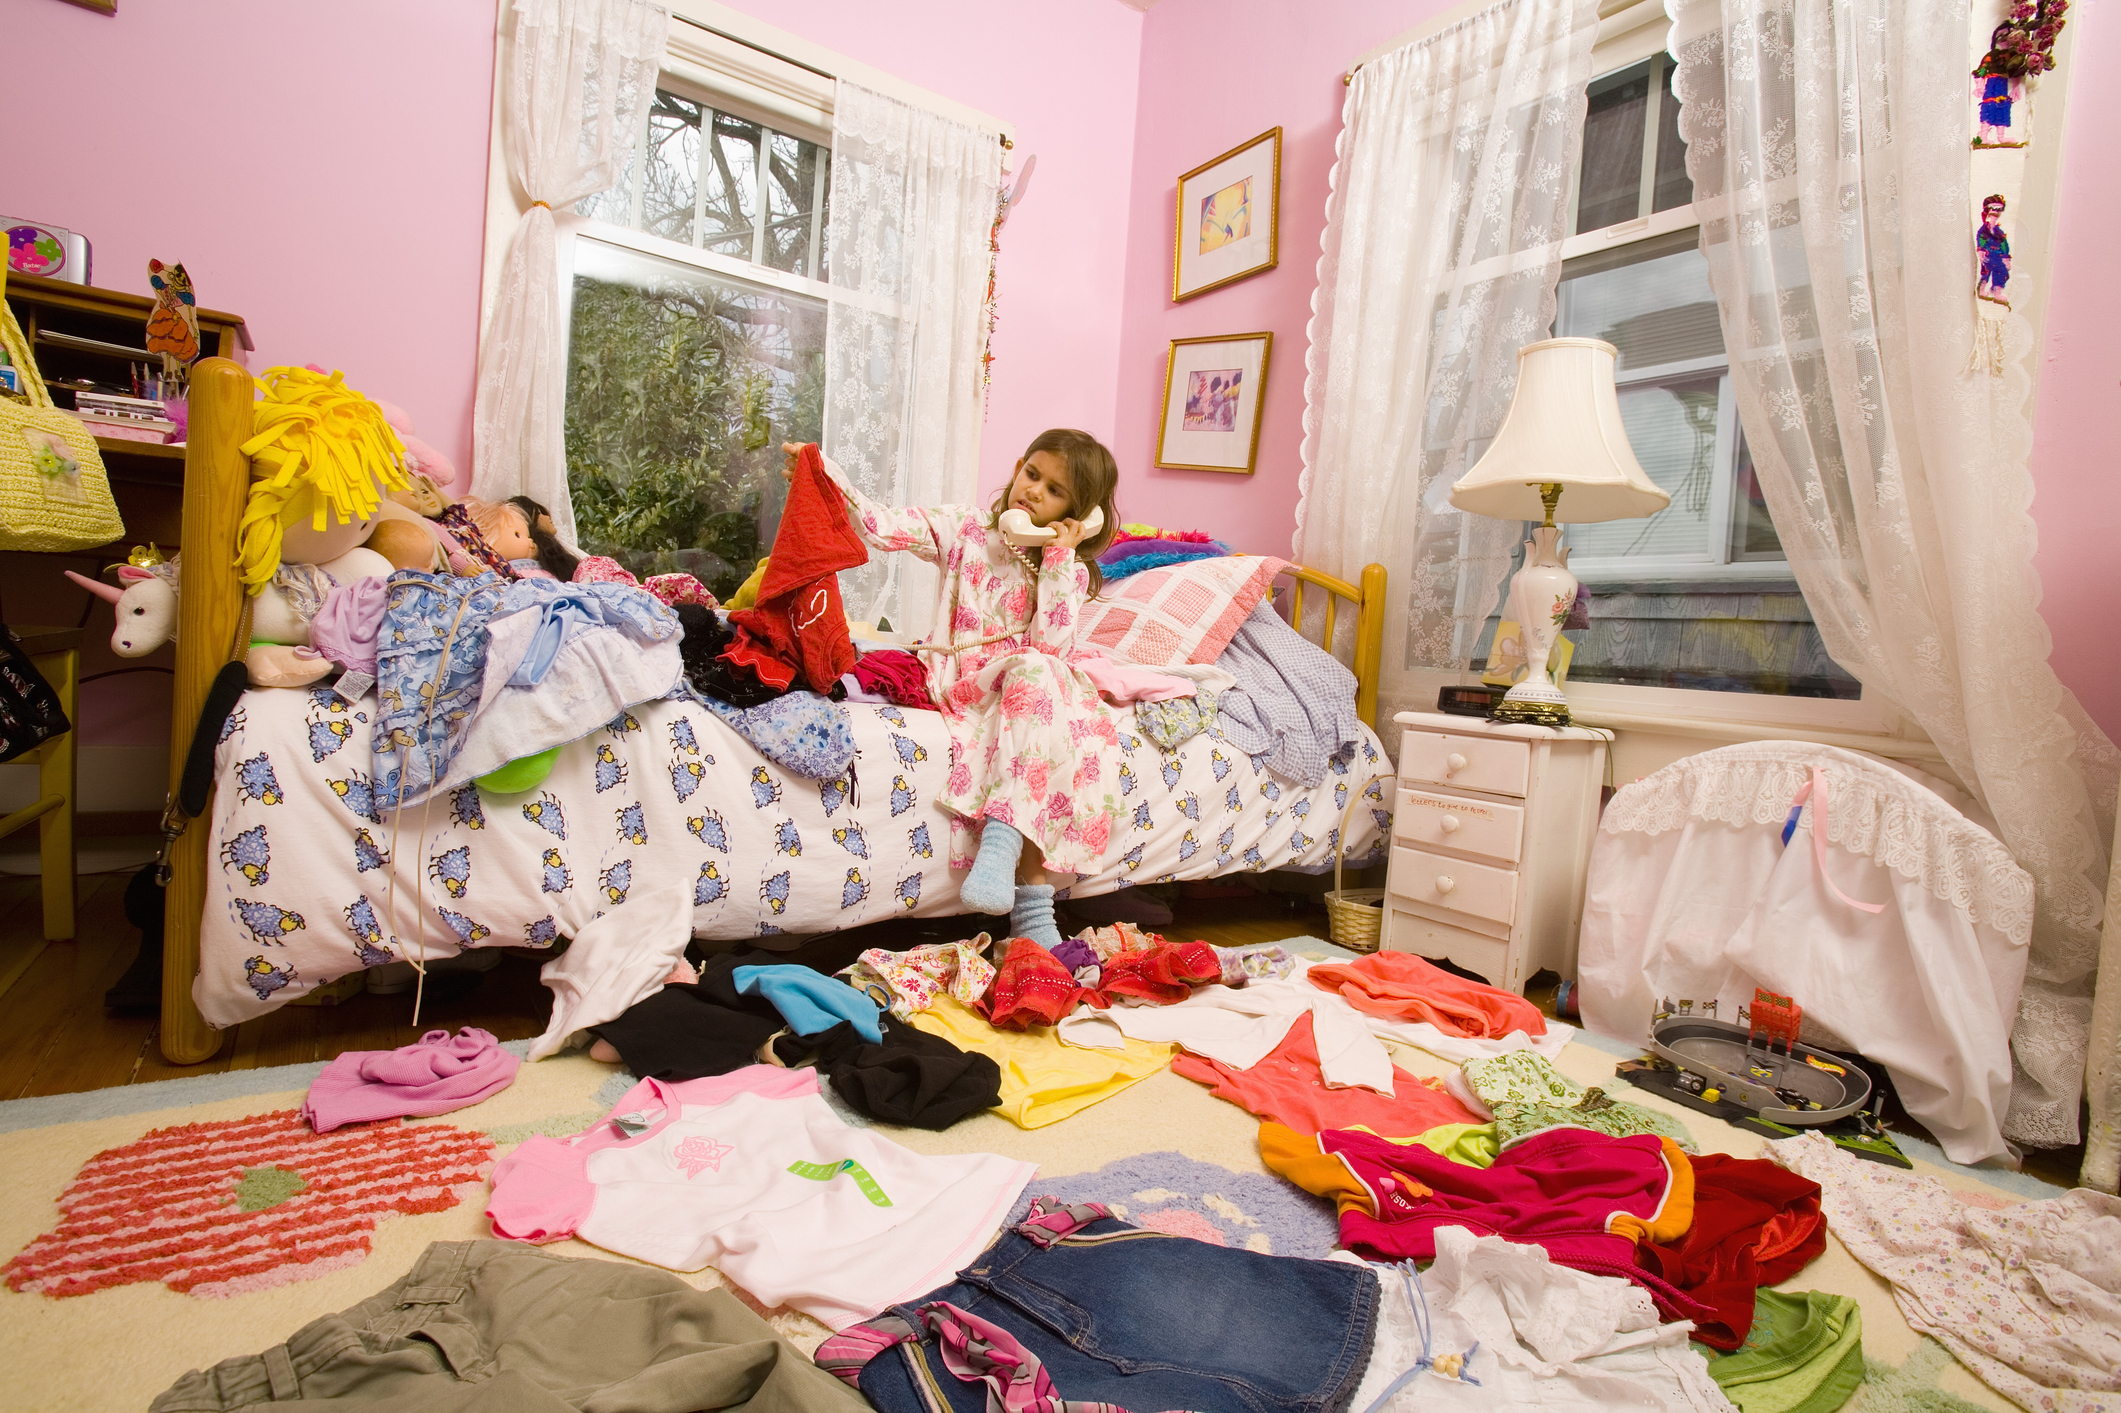 Adults with messy rooms